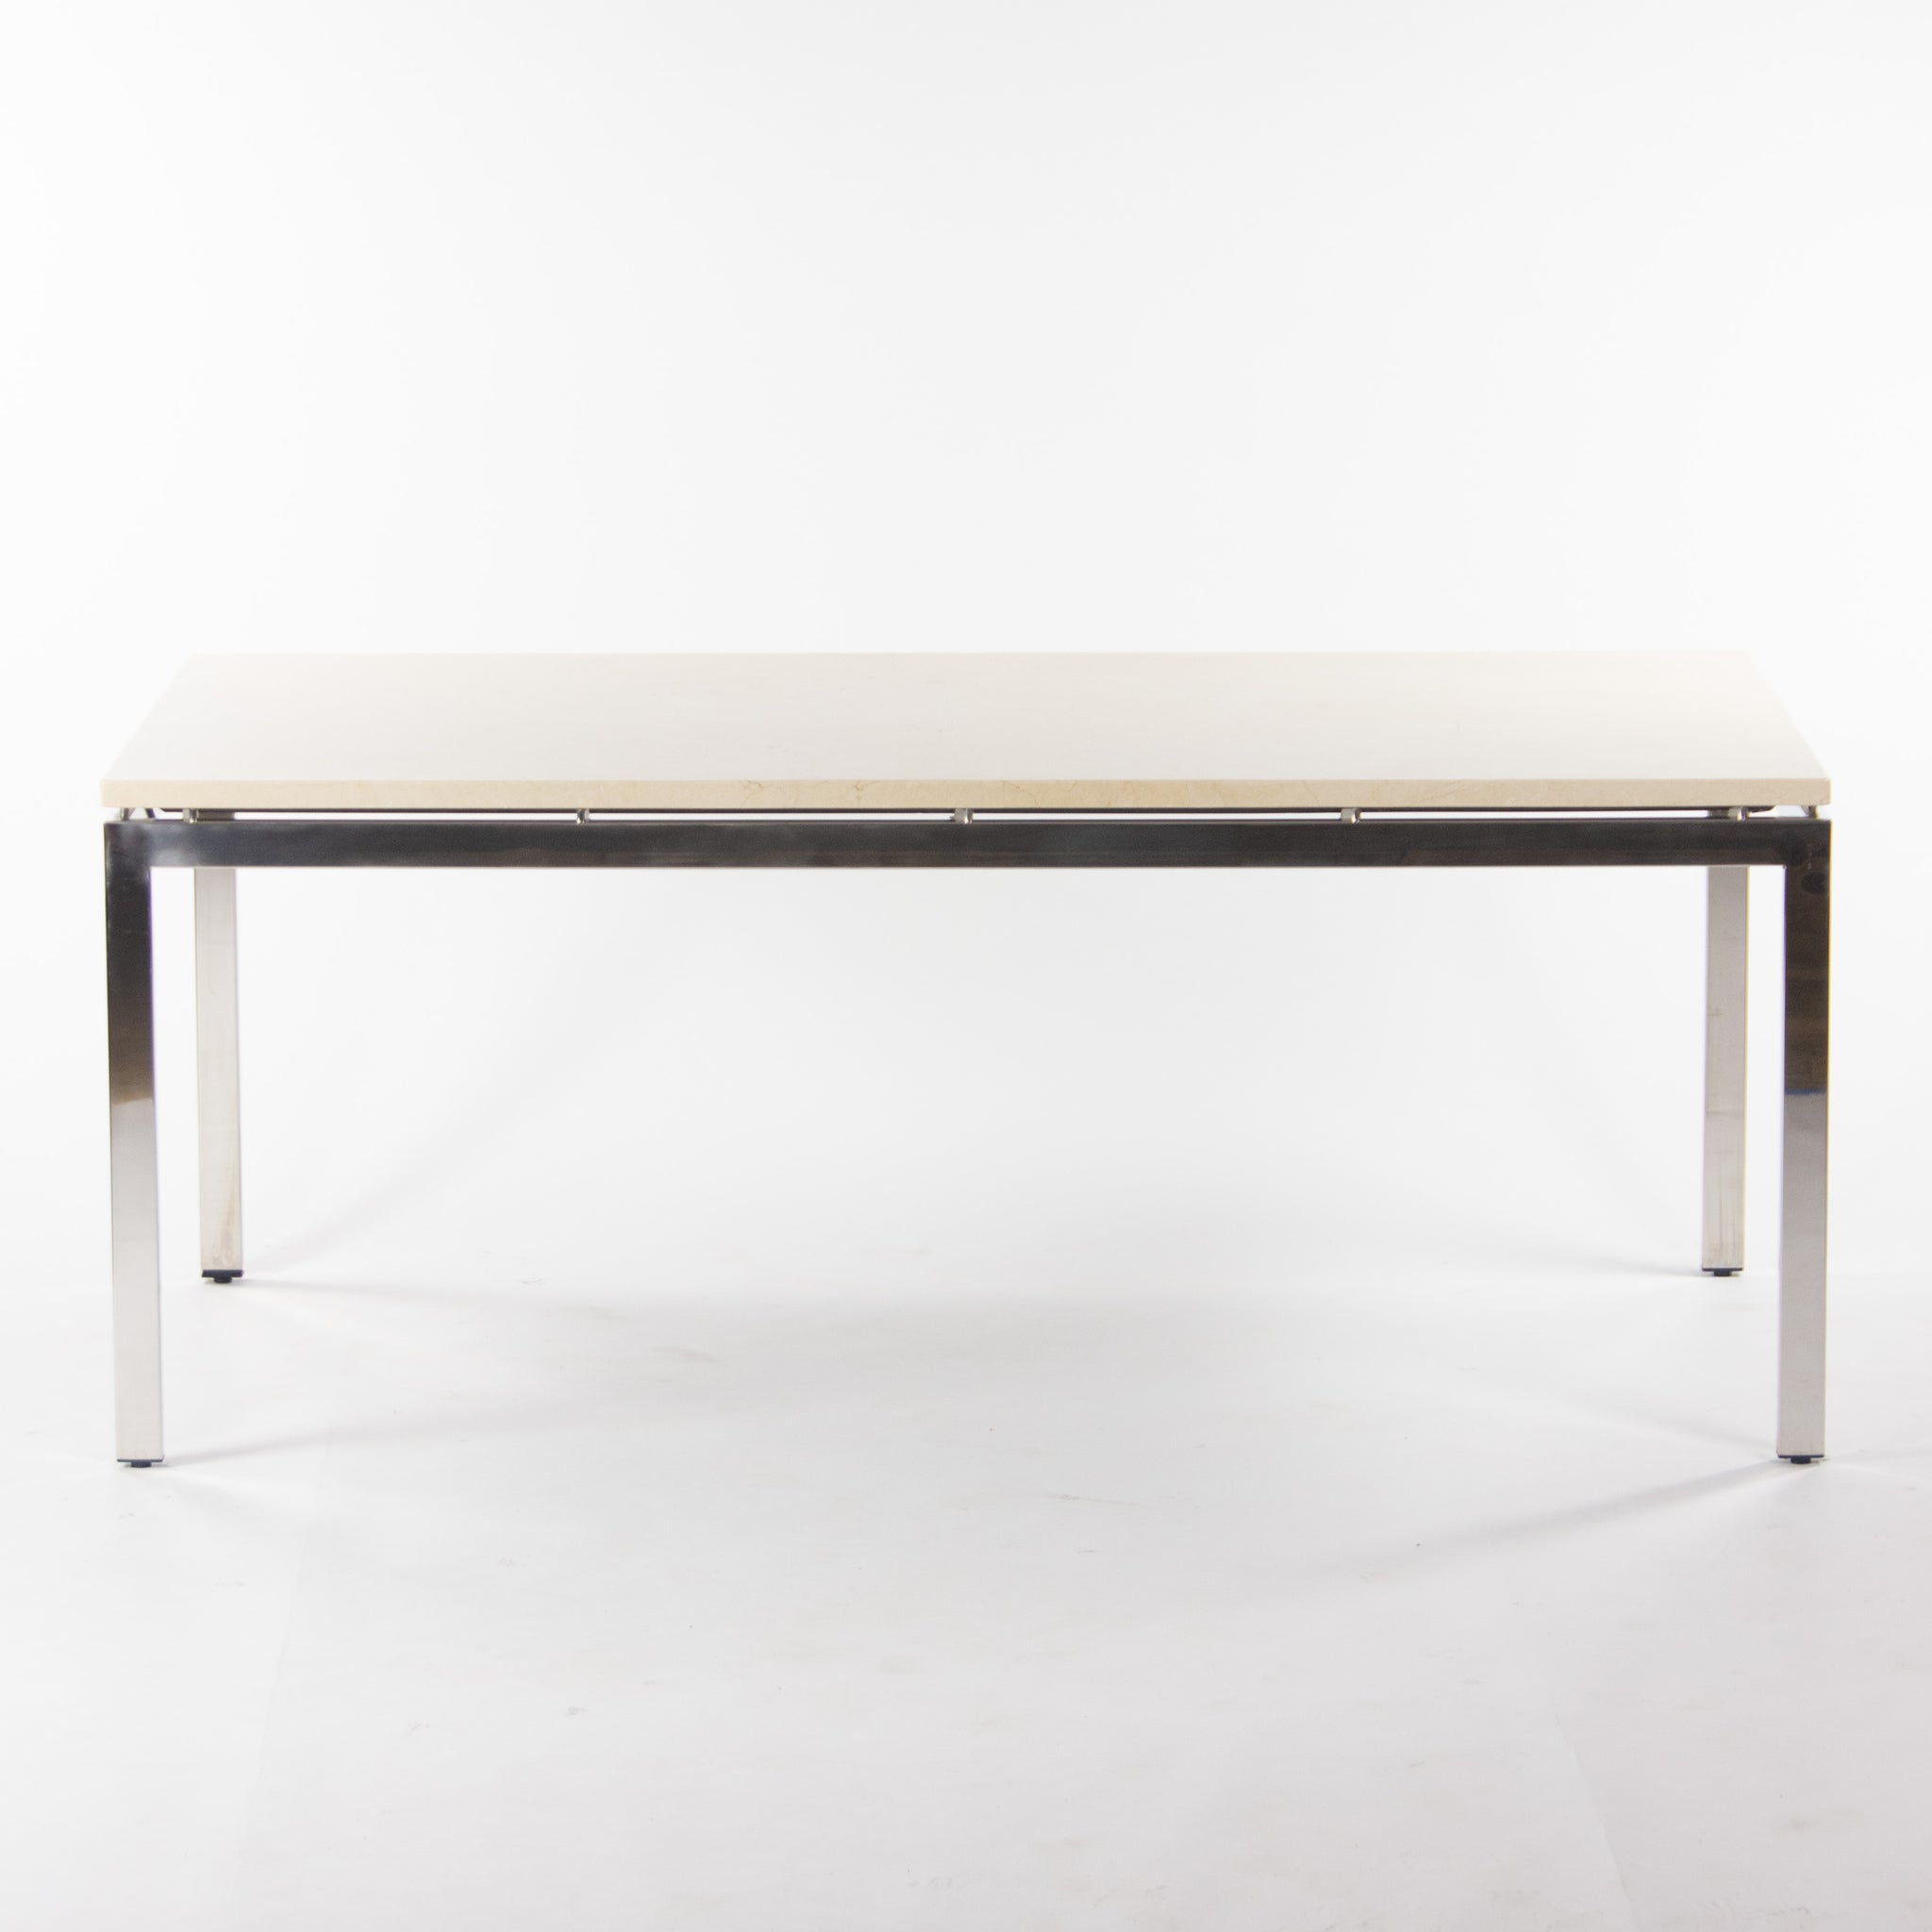 Granite Cumberland 6x3 Meeting Dining Conference Table Beige w/ Stainless Steel Base